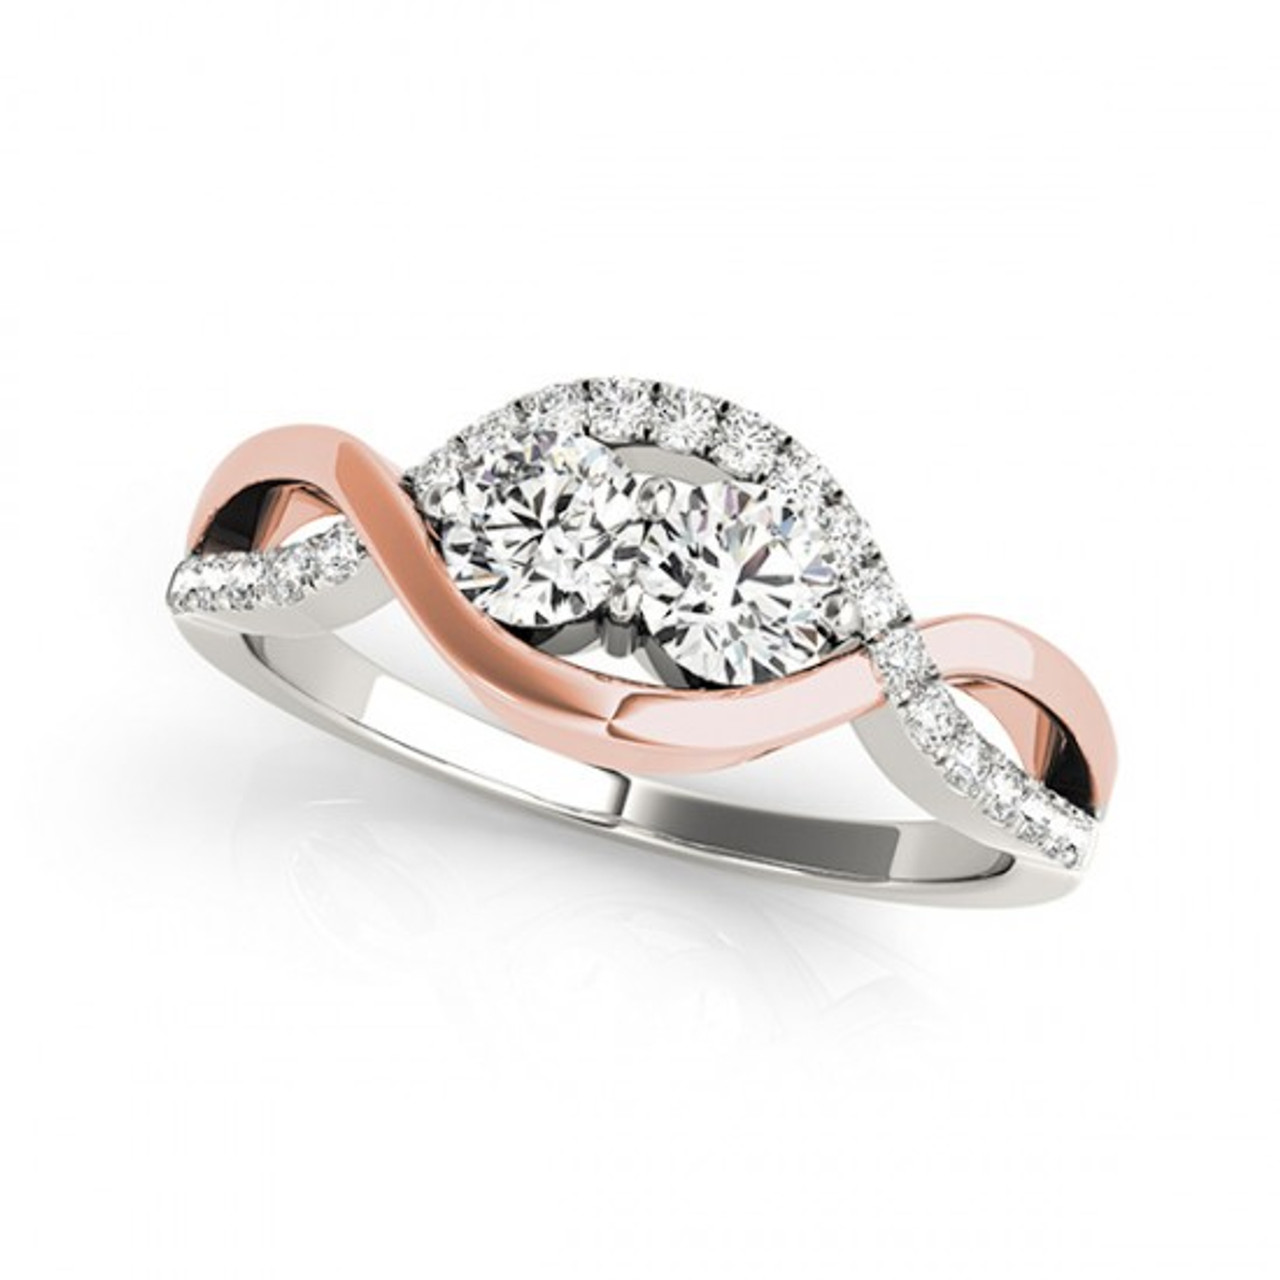 1dcf0af5f0c22 2-Stone Overlap Swirl Diamond Engagement Ring in 14K Two-Tone Gold (2/5ctw  - 1 1/5ctw)